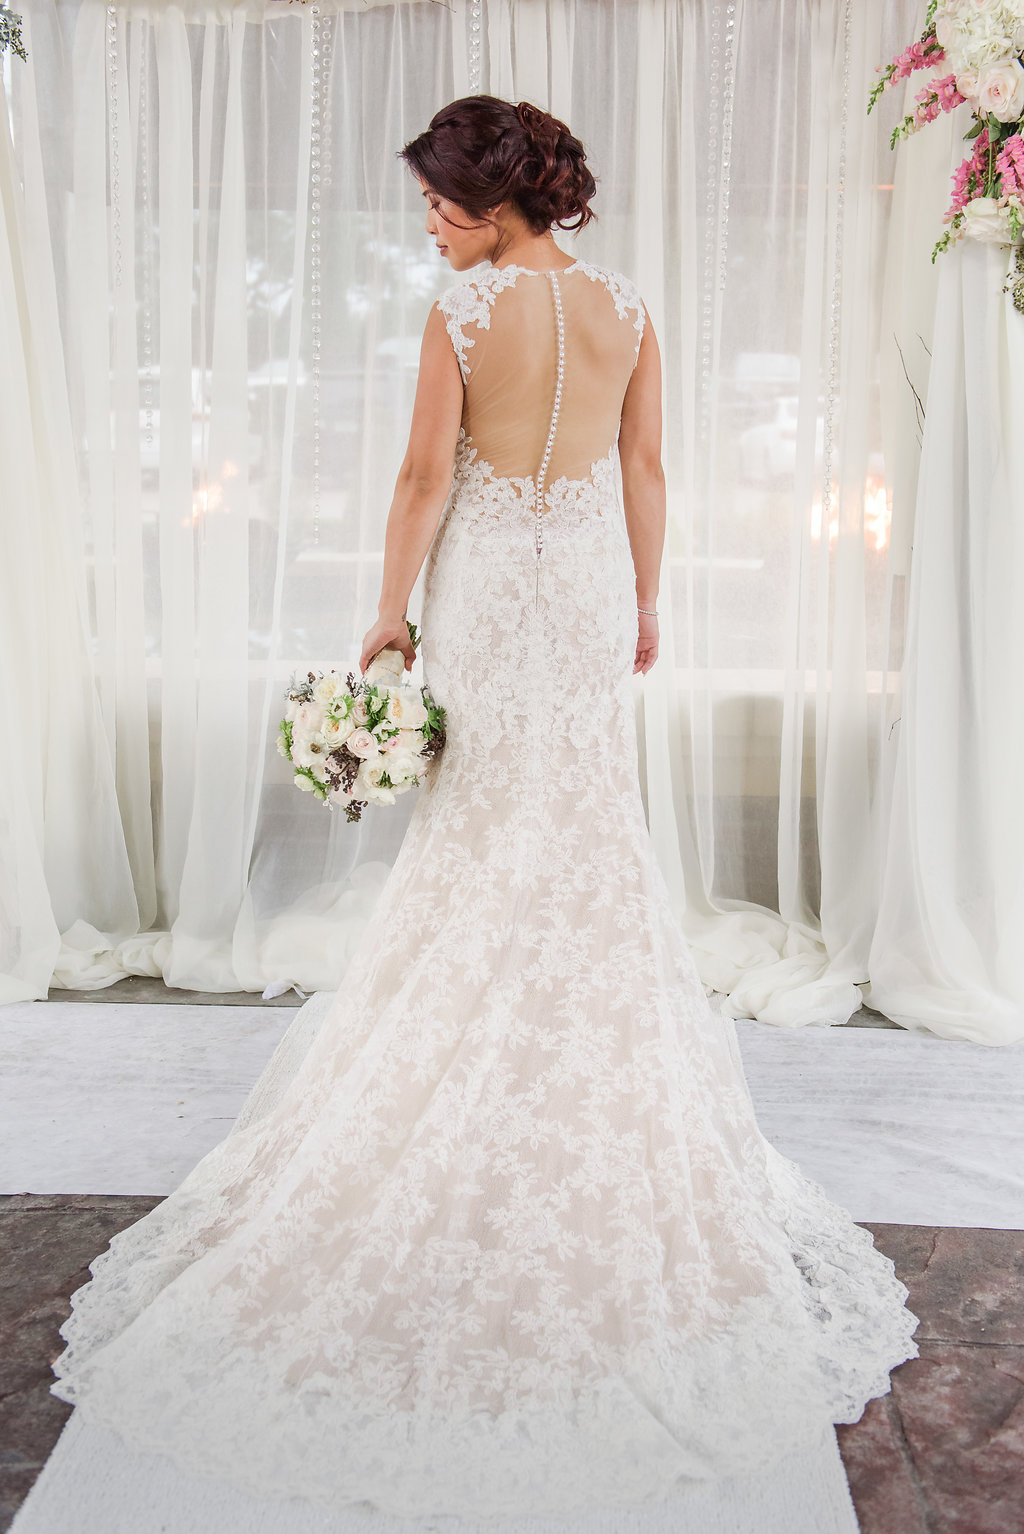 The bride wore a gorgeous lace mermaid style gown with sheer illusion back detailing.